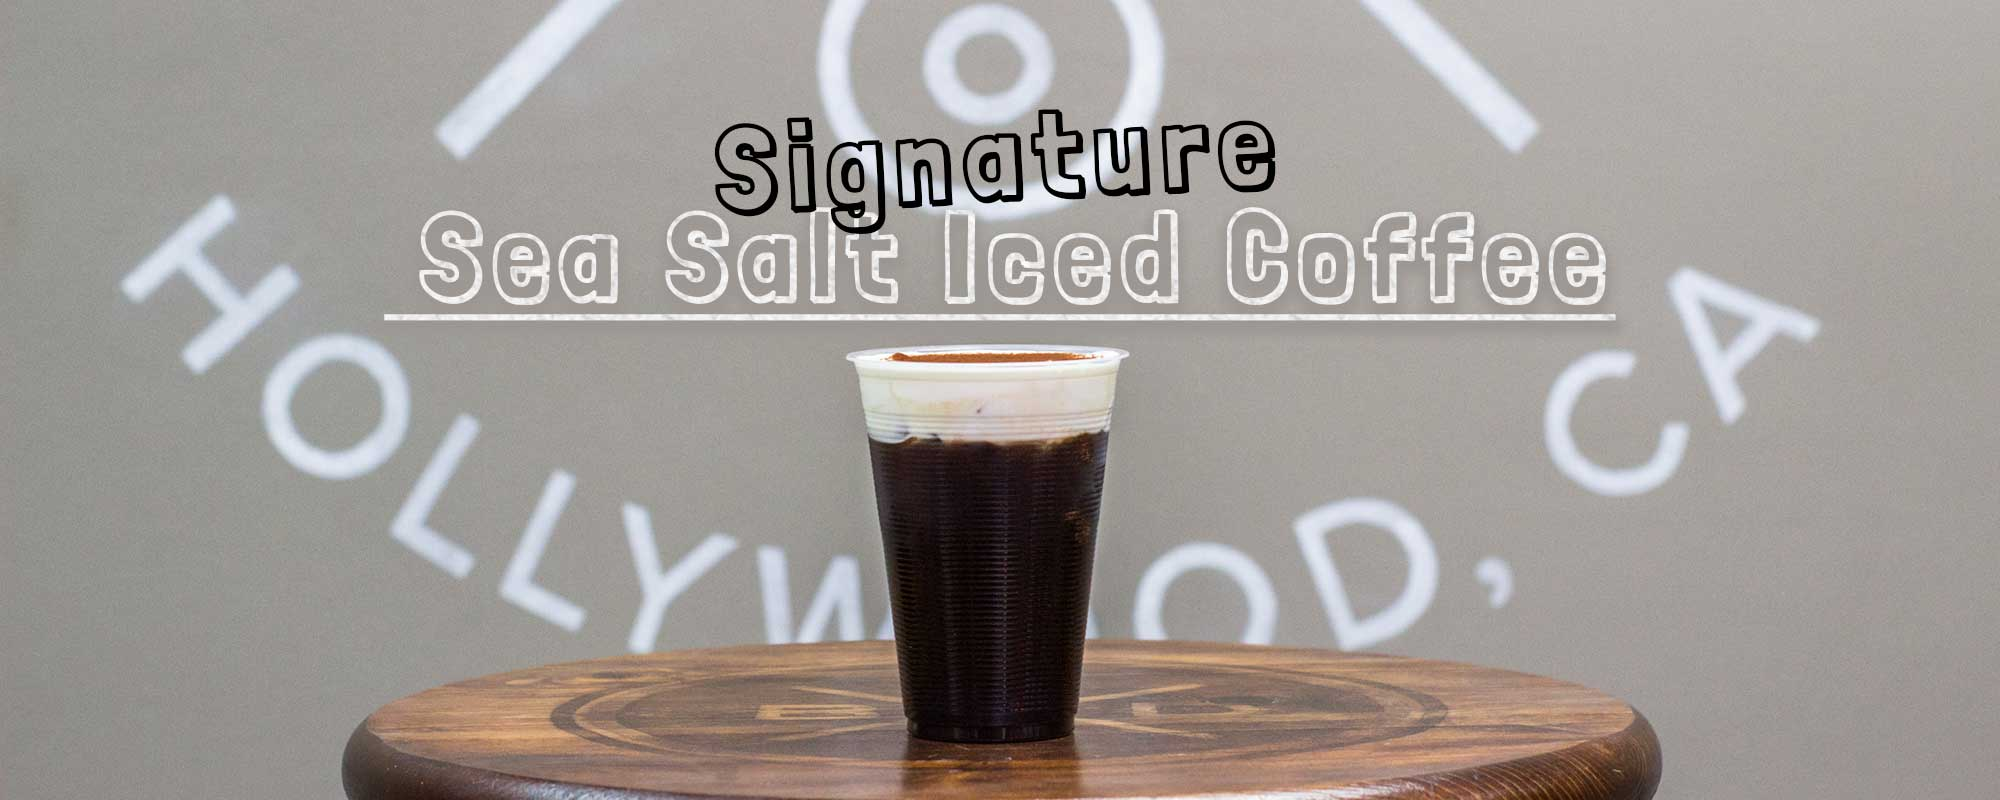 Signature Sea Salt Iced Coffee